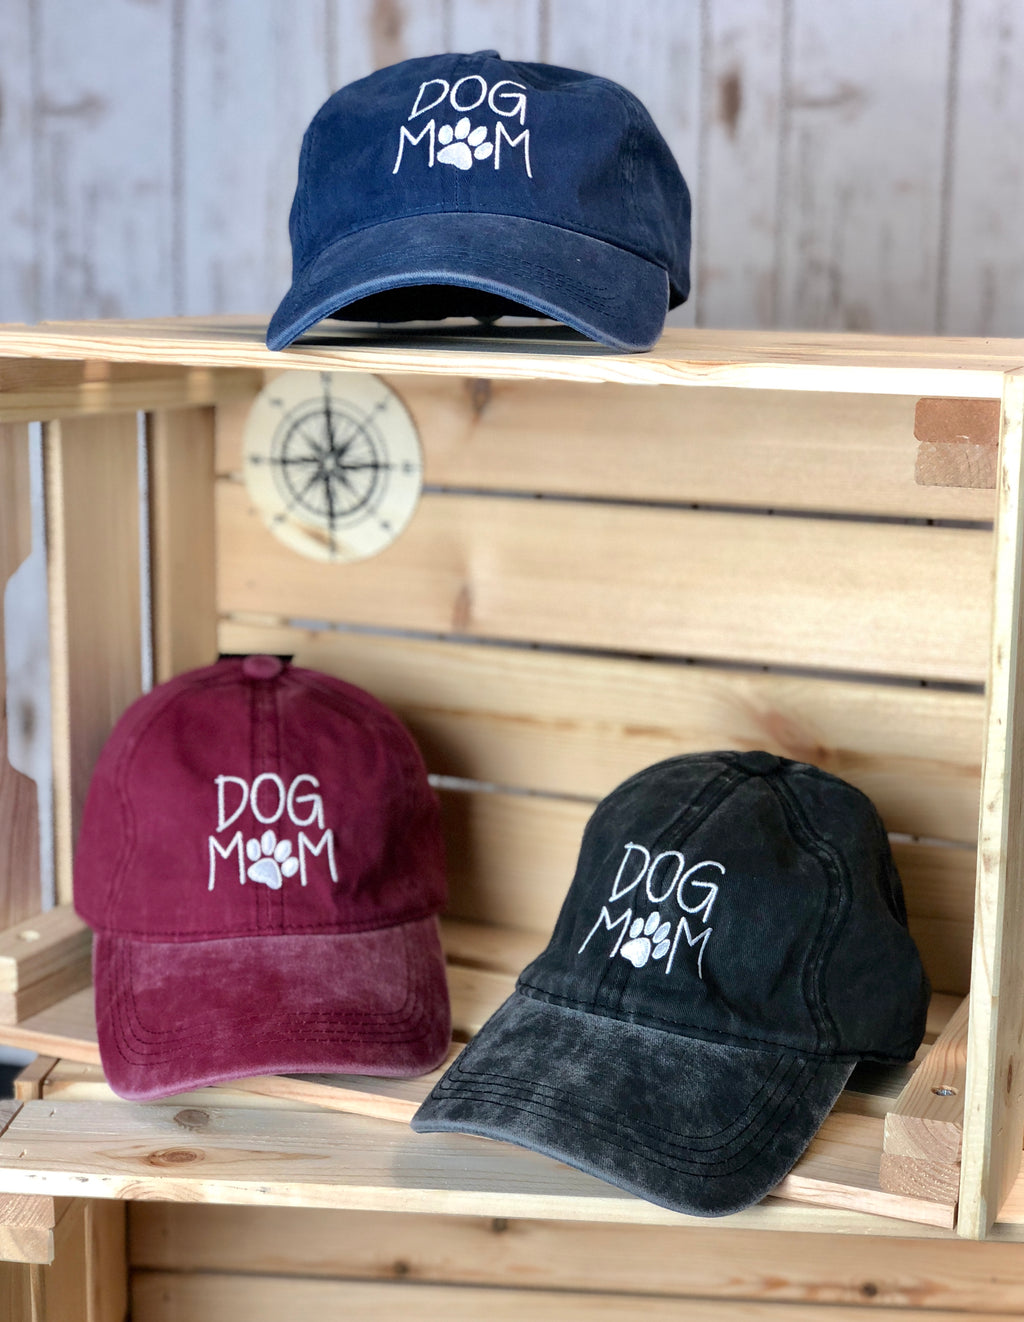 Dog Mom Hat – Java House Clothing dc1fbf88a83f